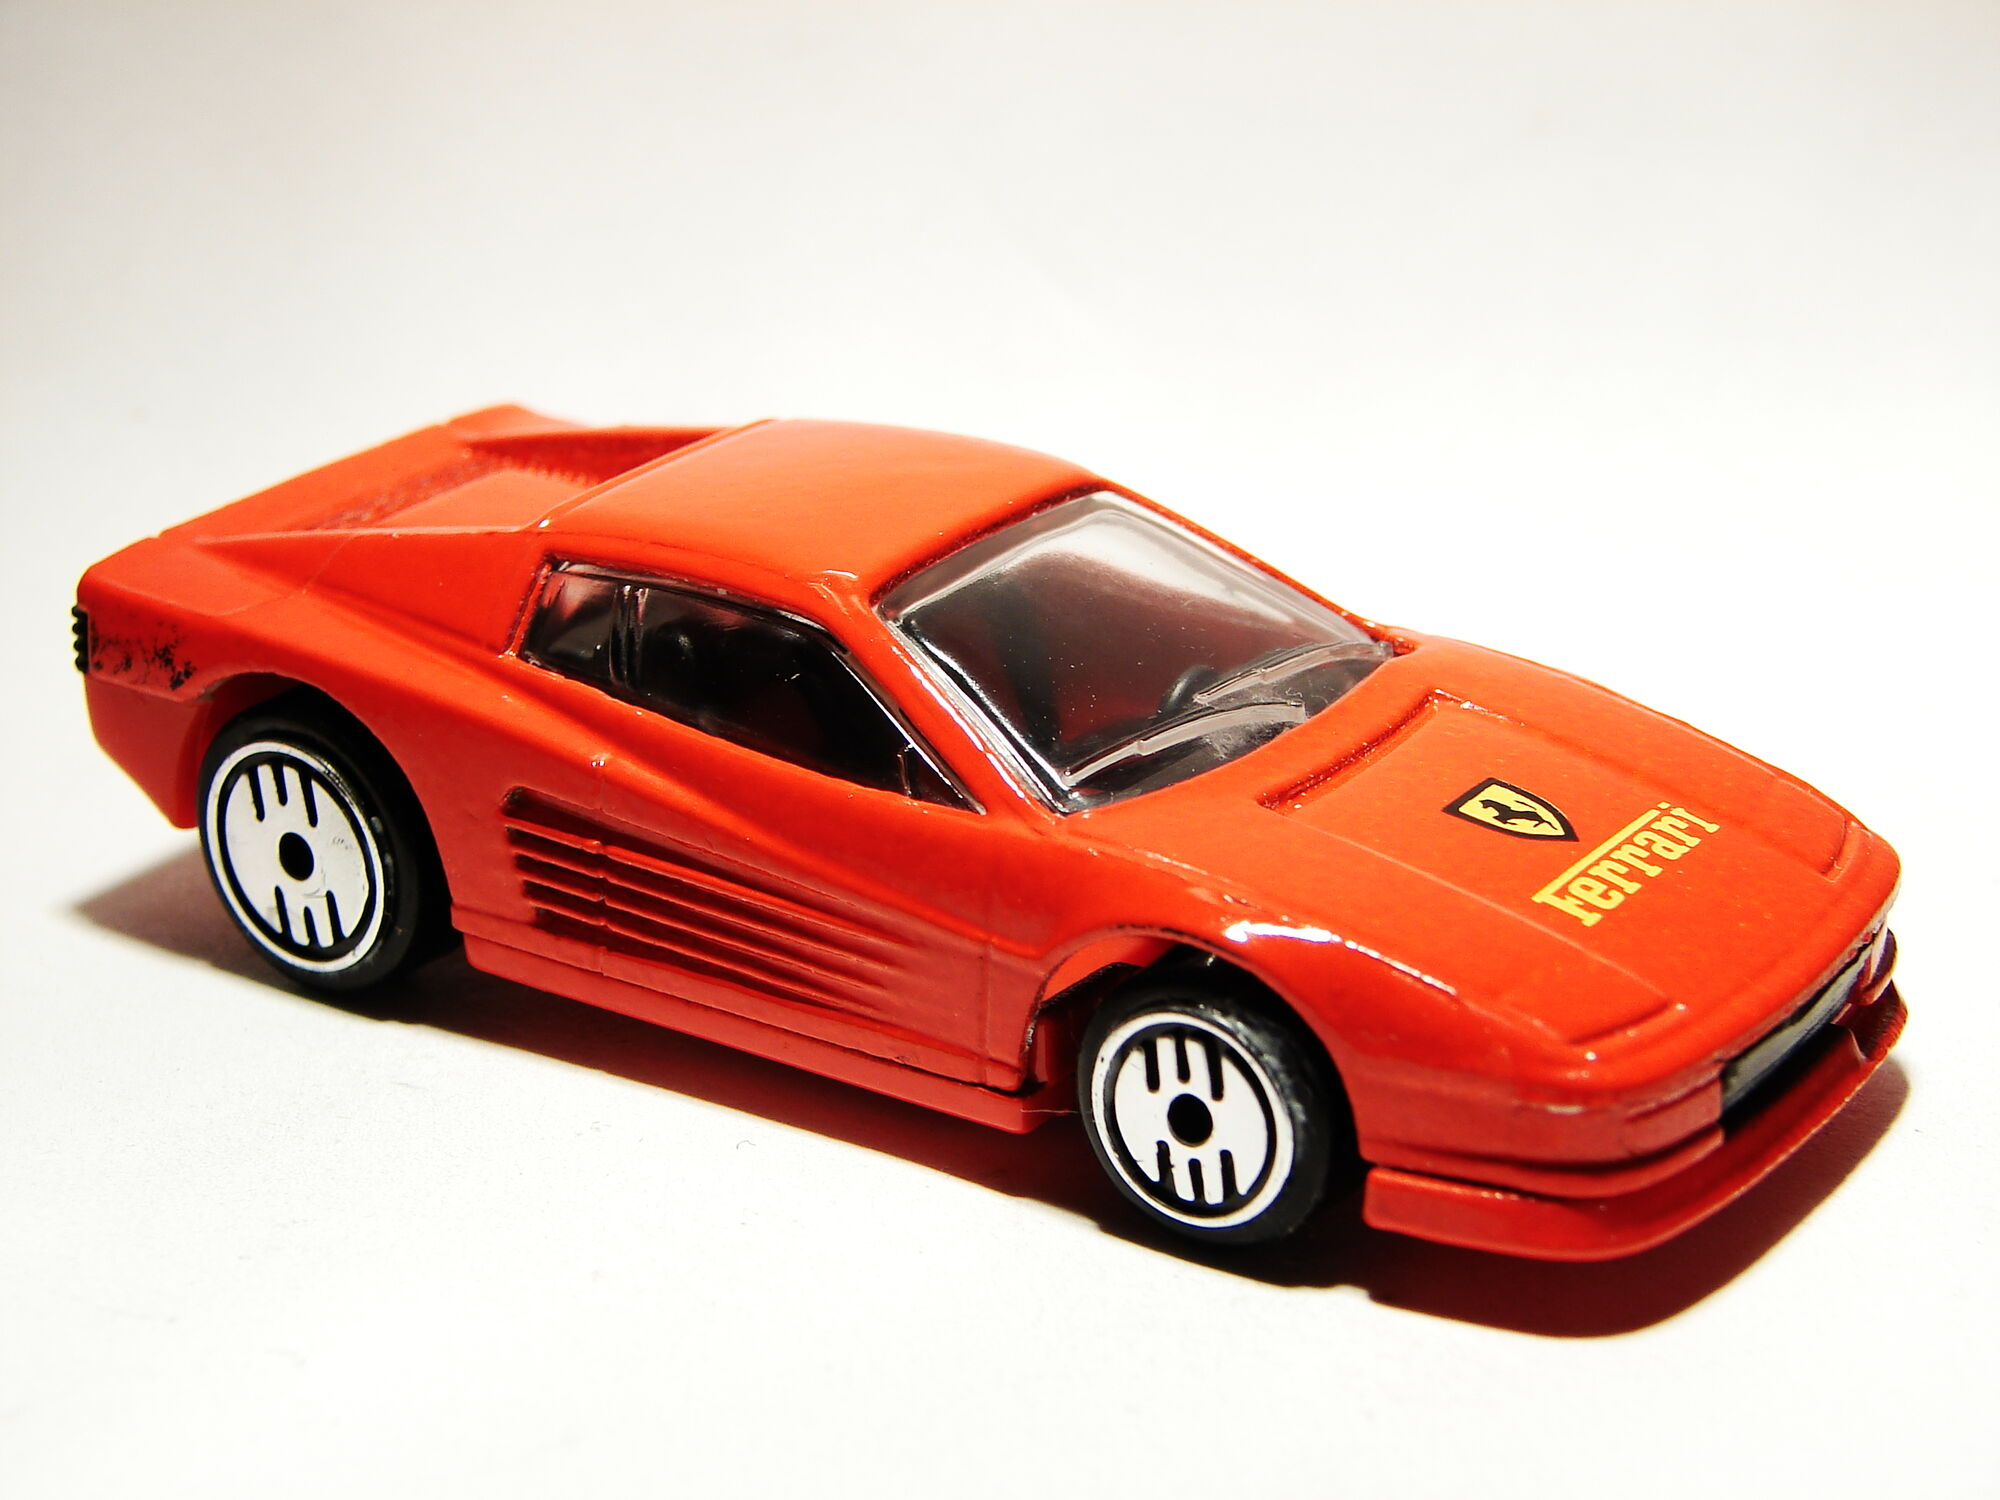 ferrari testarossa hot wheels wiki fandom powered by wikia. Black Bedroom Furniture Sets. Home Design Ideas